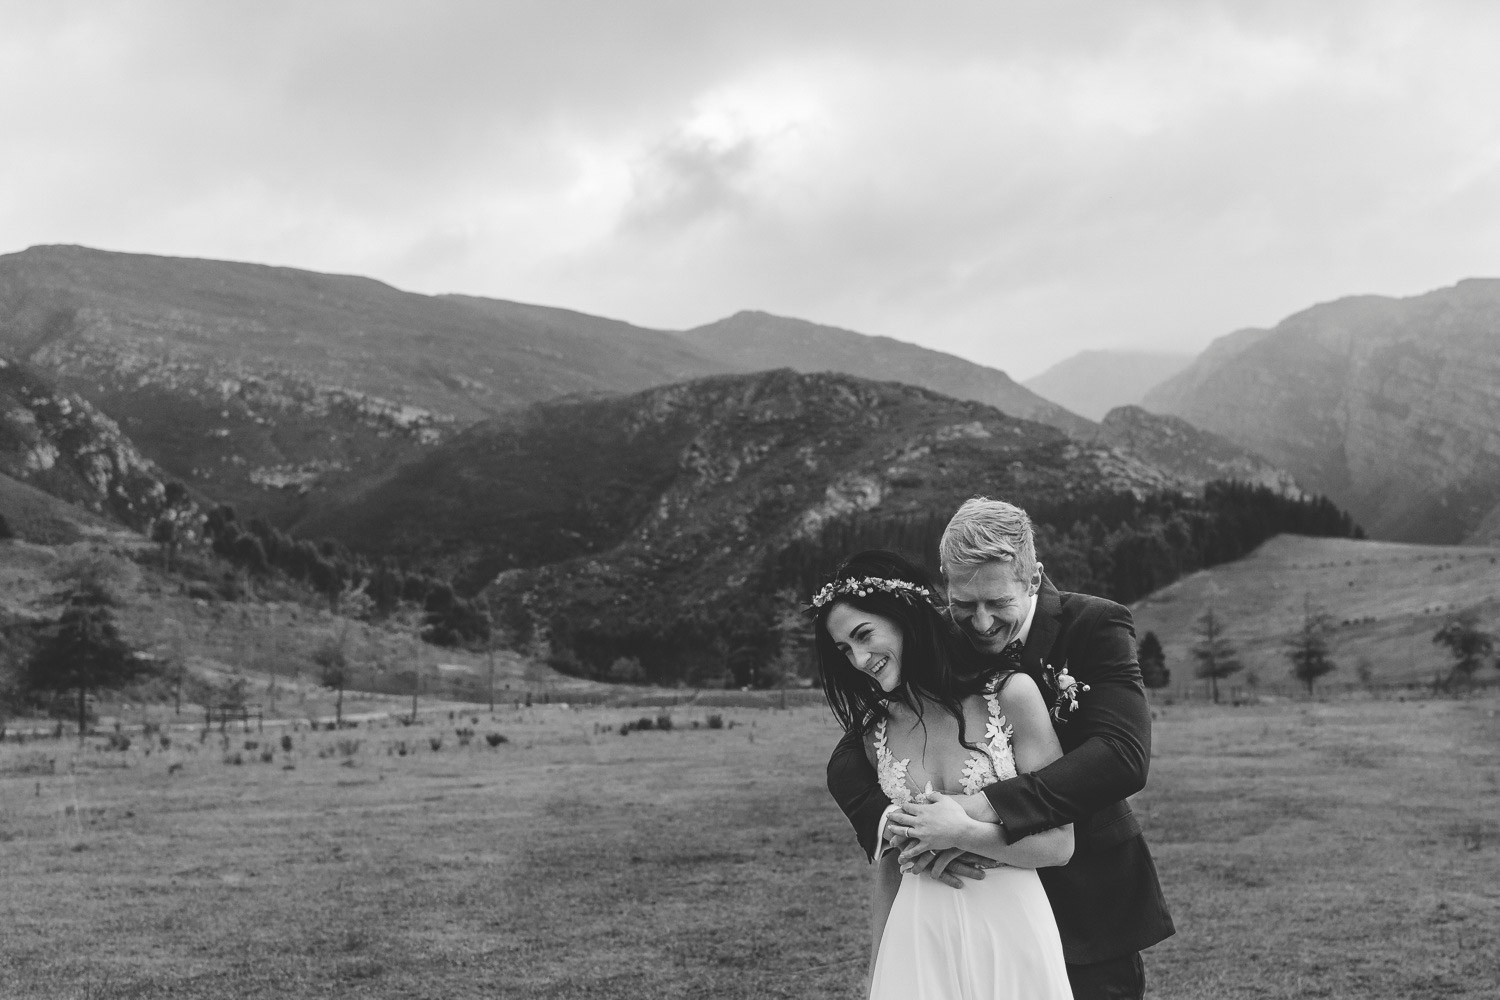 western-cape-photoghers-gen-scott-greyton-wedding-photography-charlie-ray102.jpg